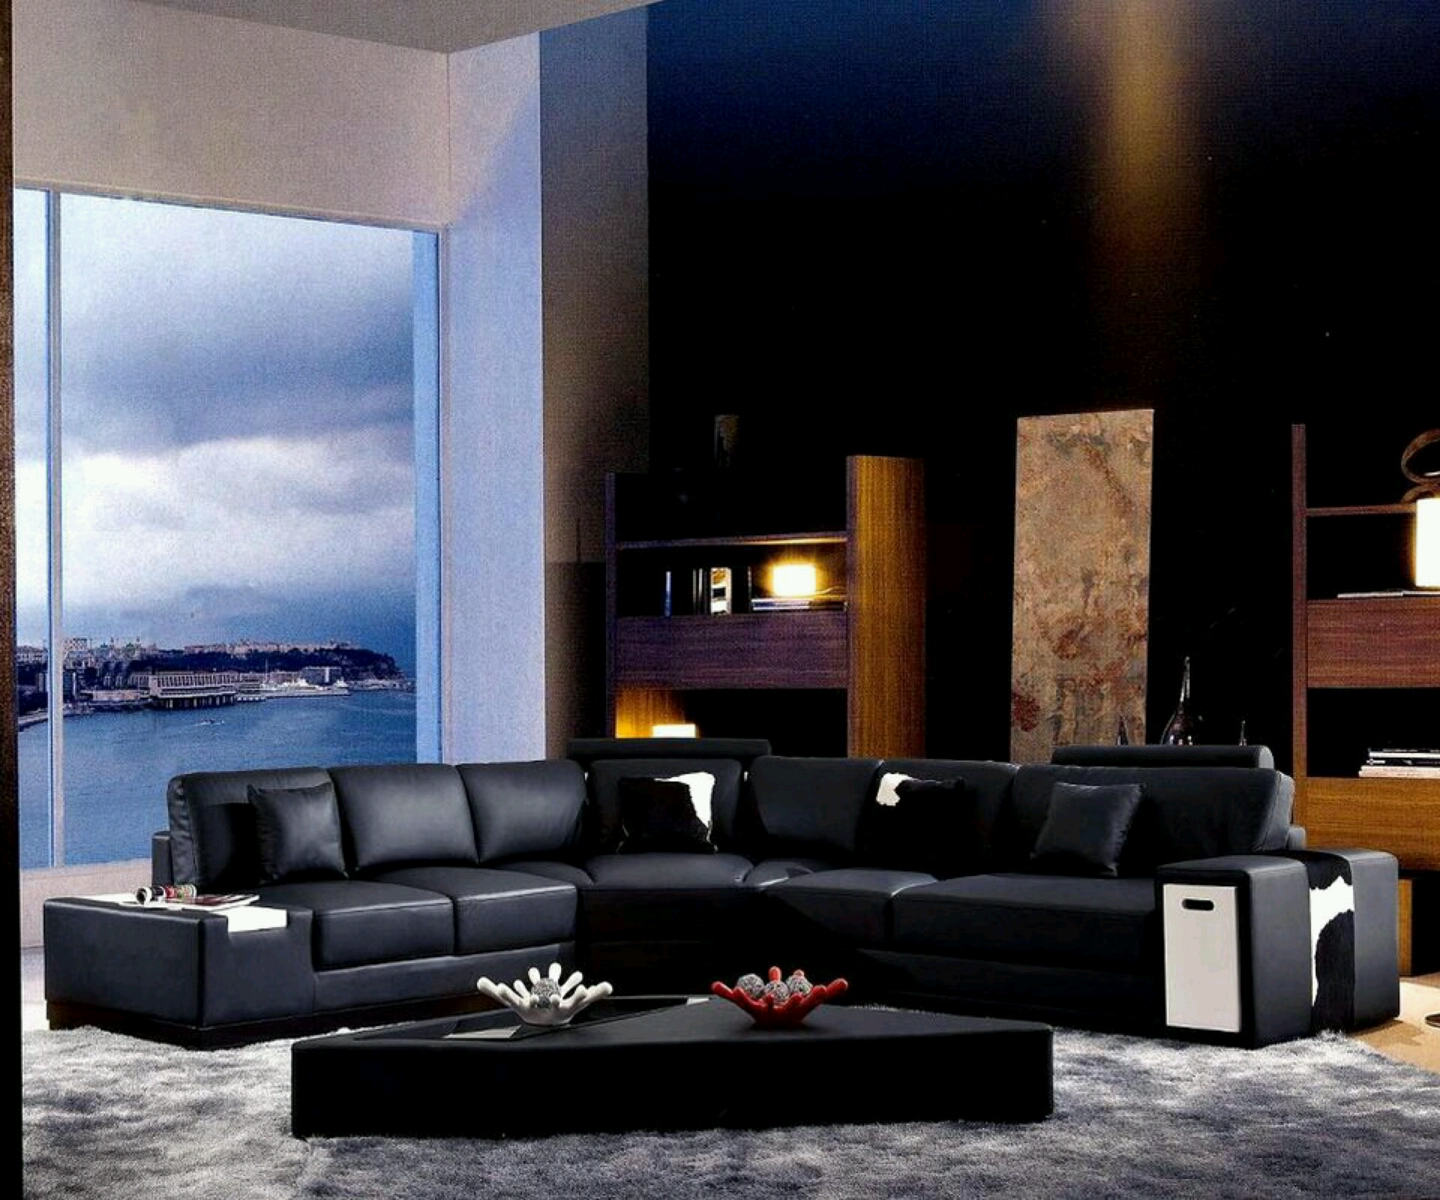 New home designs latest luxury living rooms interior modern designs ideas - Living room modern ...